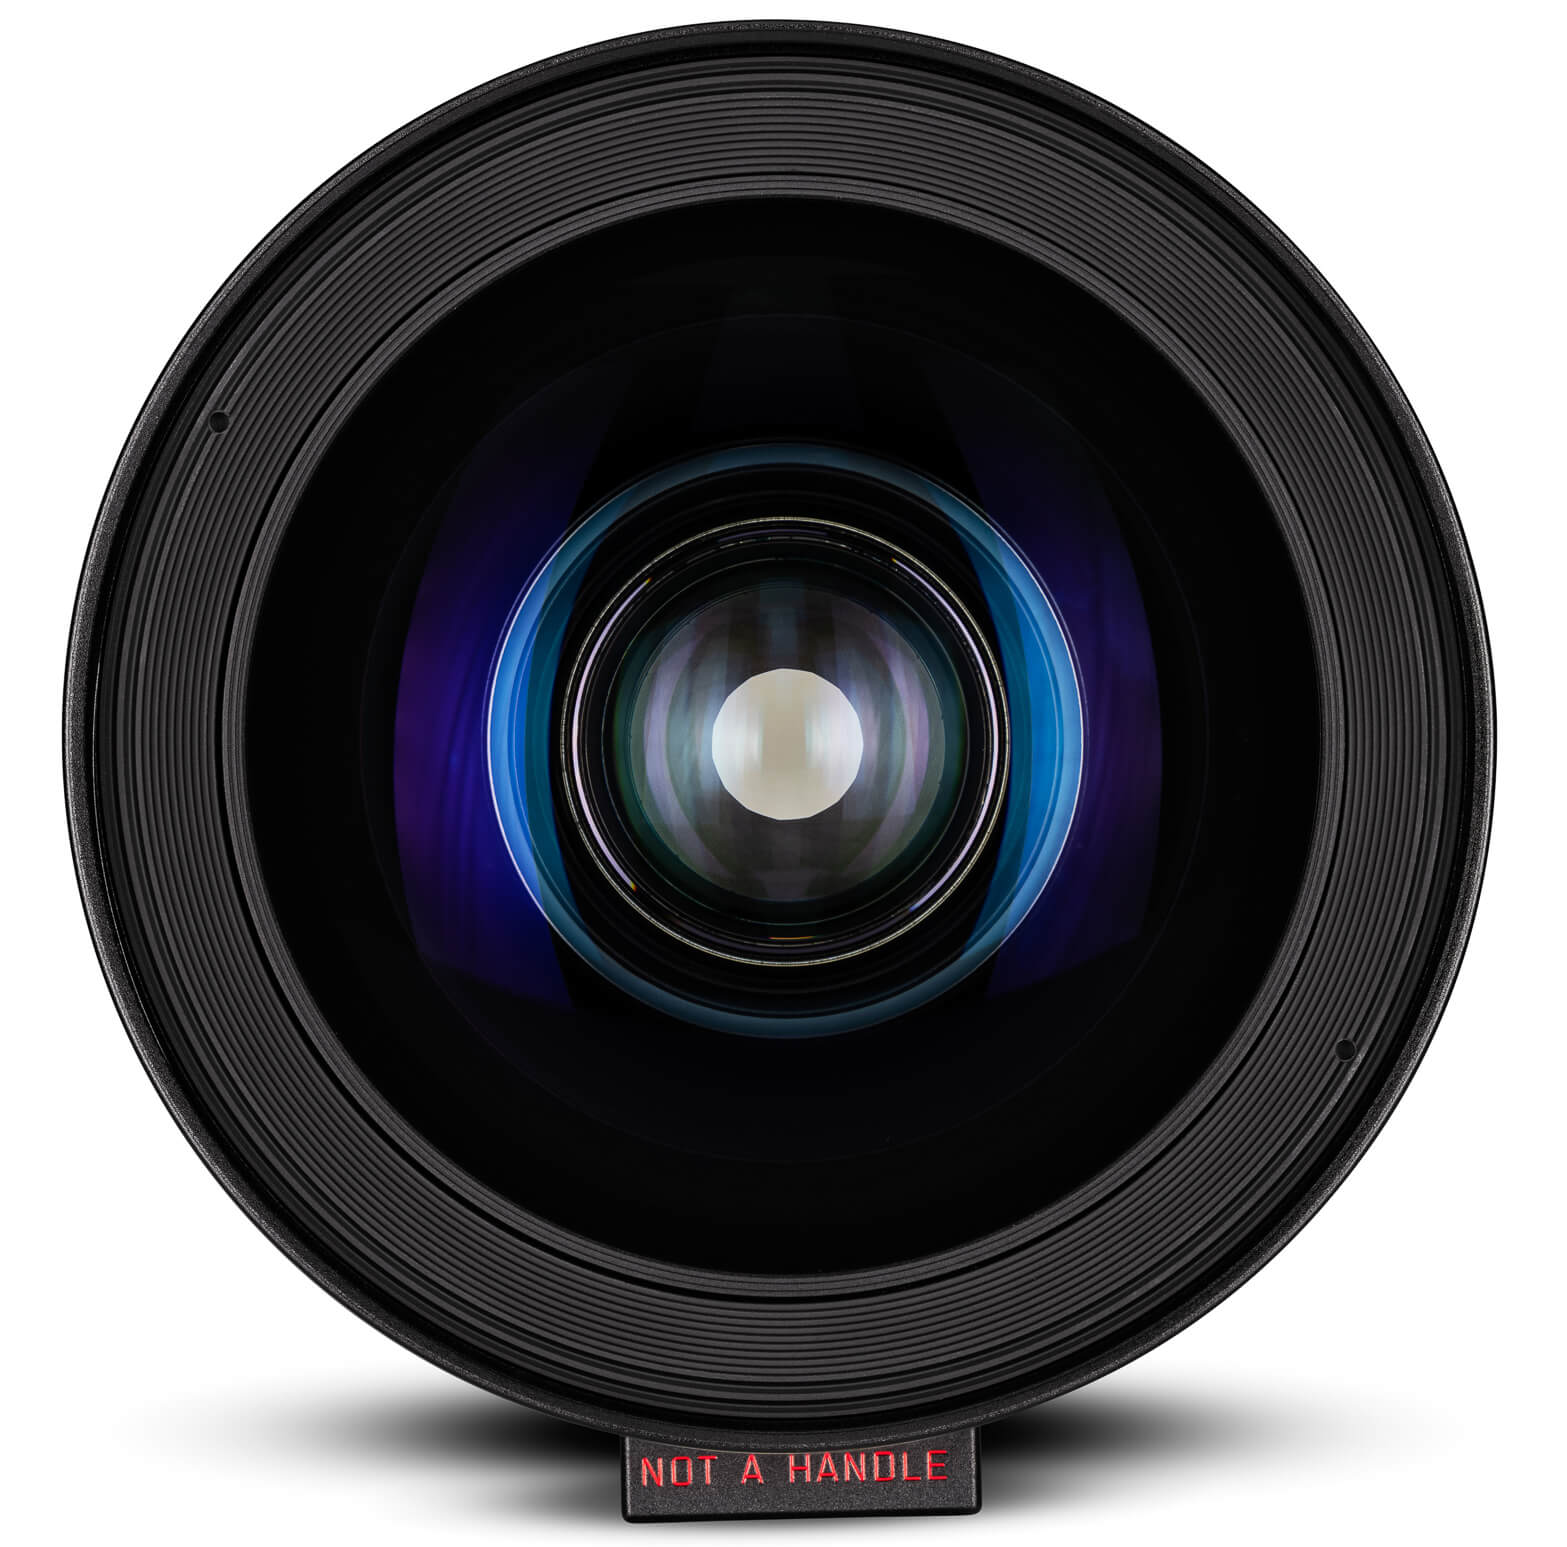 Leitz Zoom front view 25-75mm